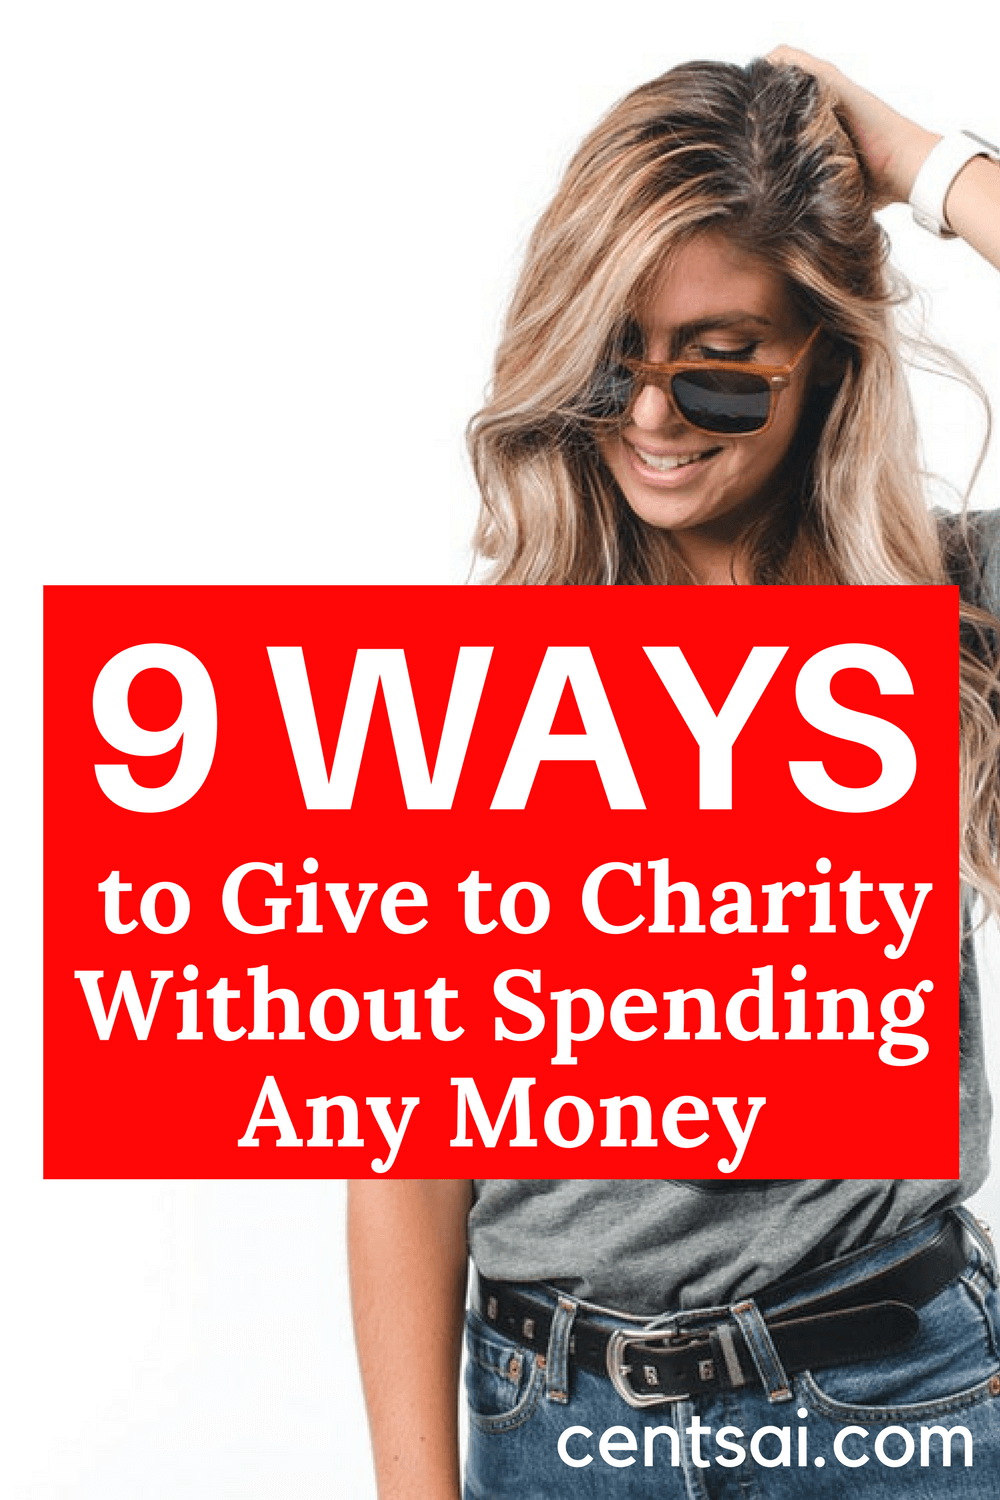 9 Ways to Give to Charity Without Spending Any Money